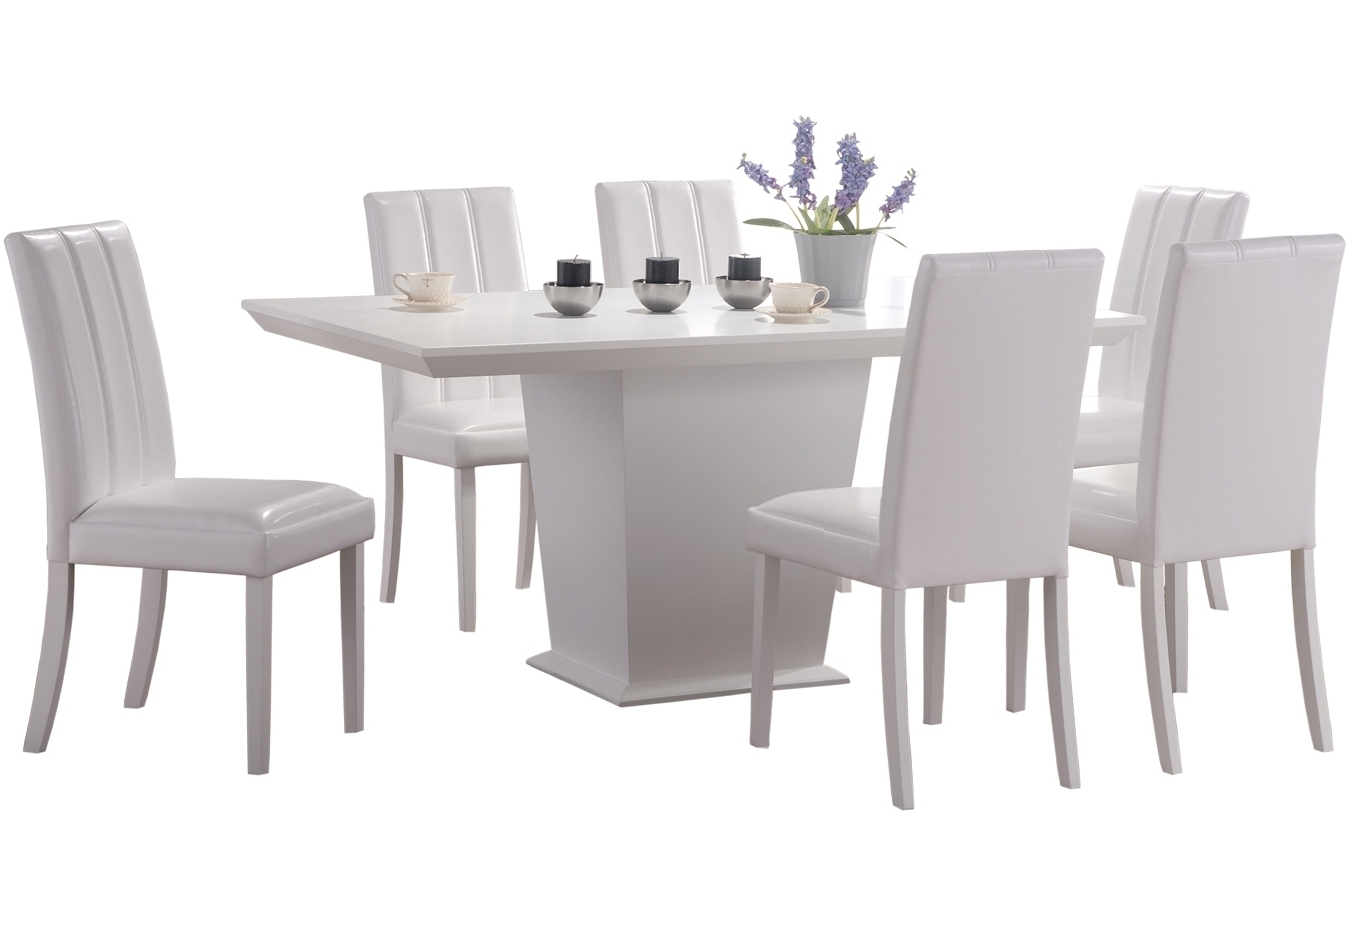 Interesting White Dining Room Tables Pictures Design Ideas Chair Within Favorite Smartie Dining Tables And Chairs (View 5 of 25)